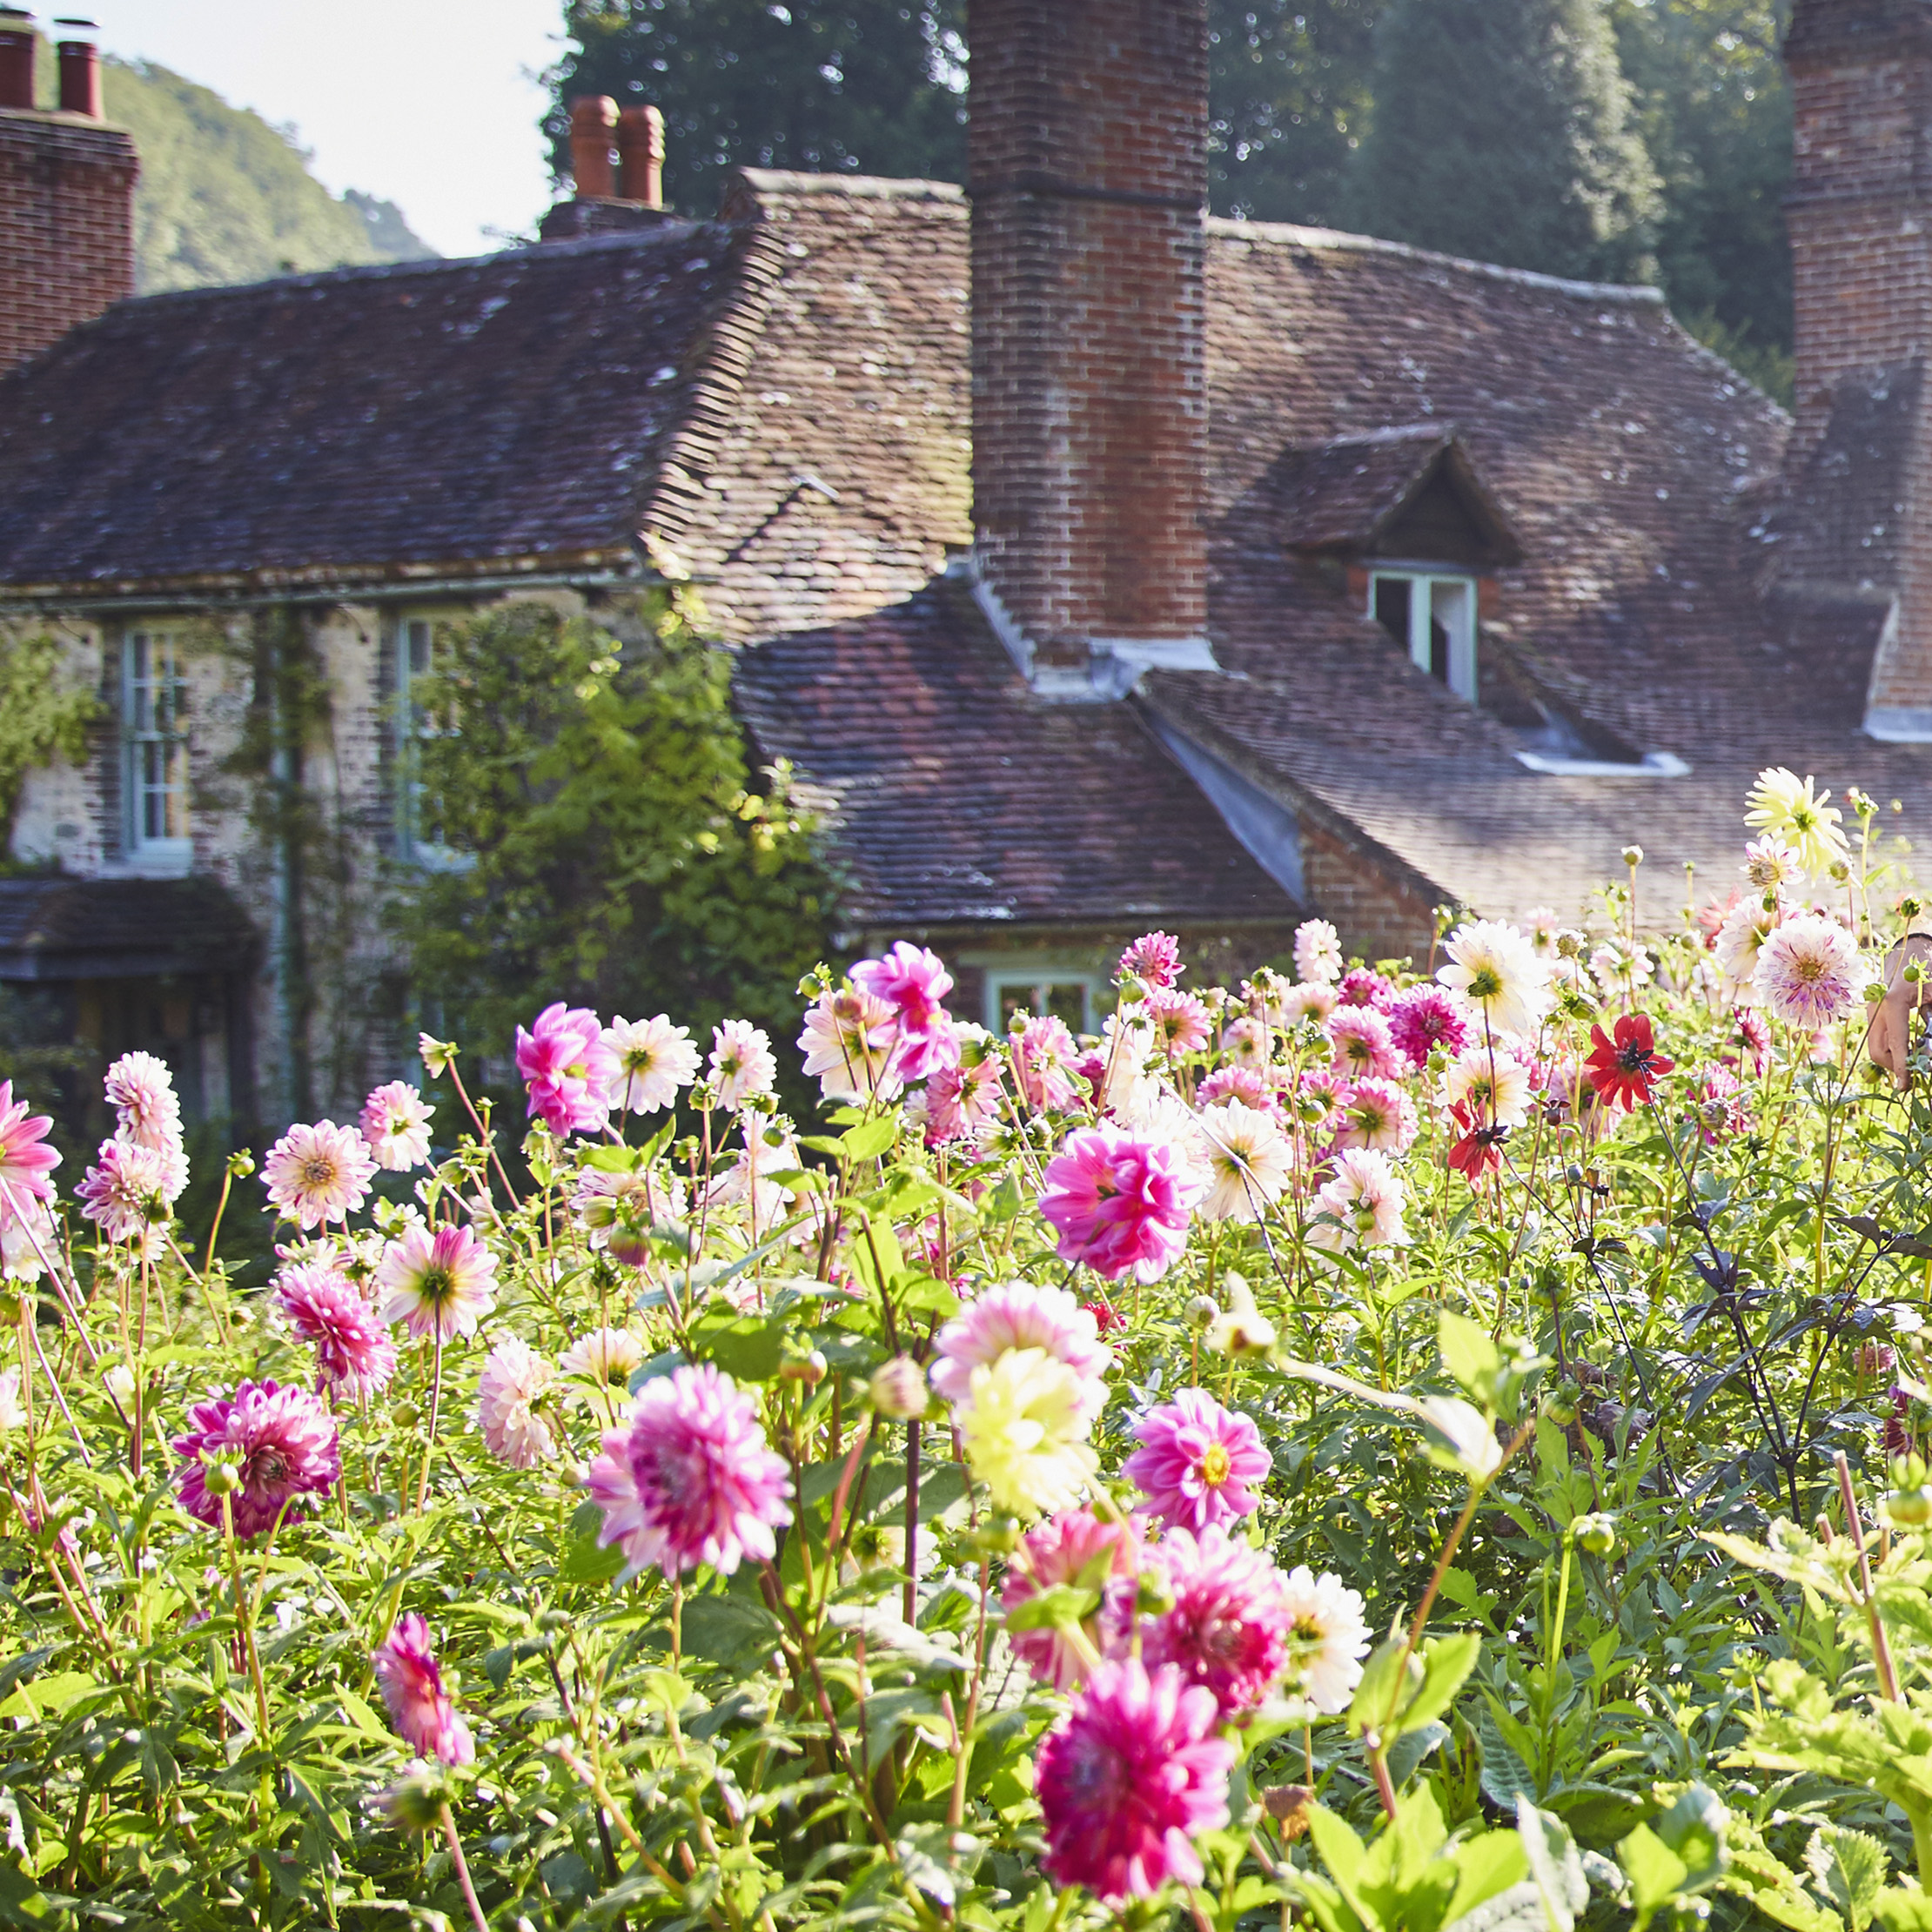 Alan Titchmarsh How I Grow Dahlias And Why They Re My Second Most Infallible Plants Country Life